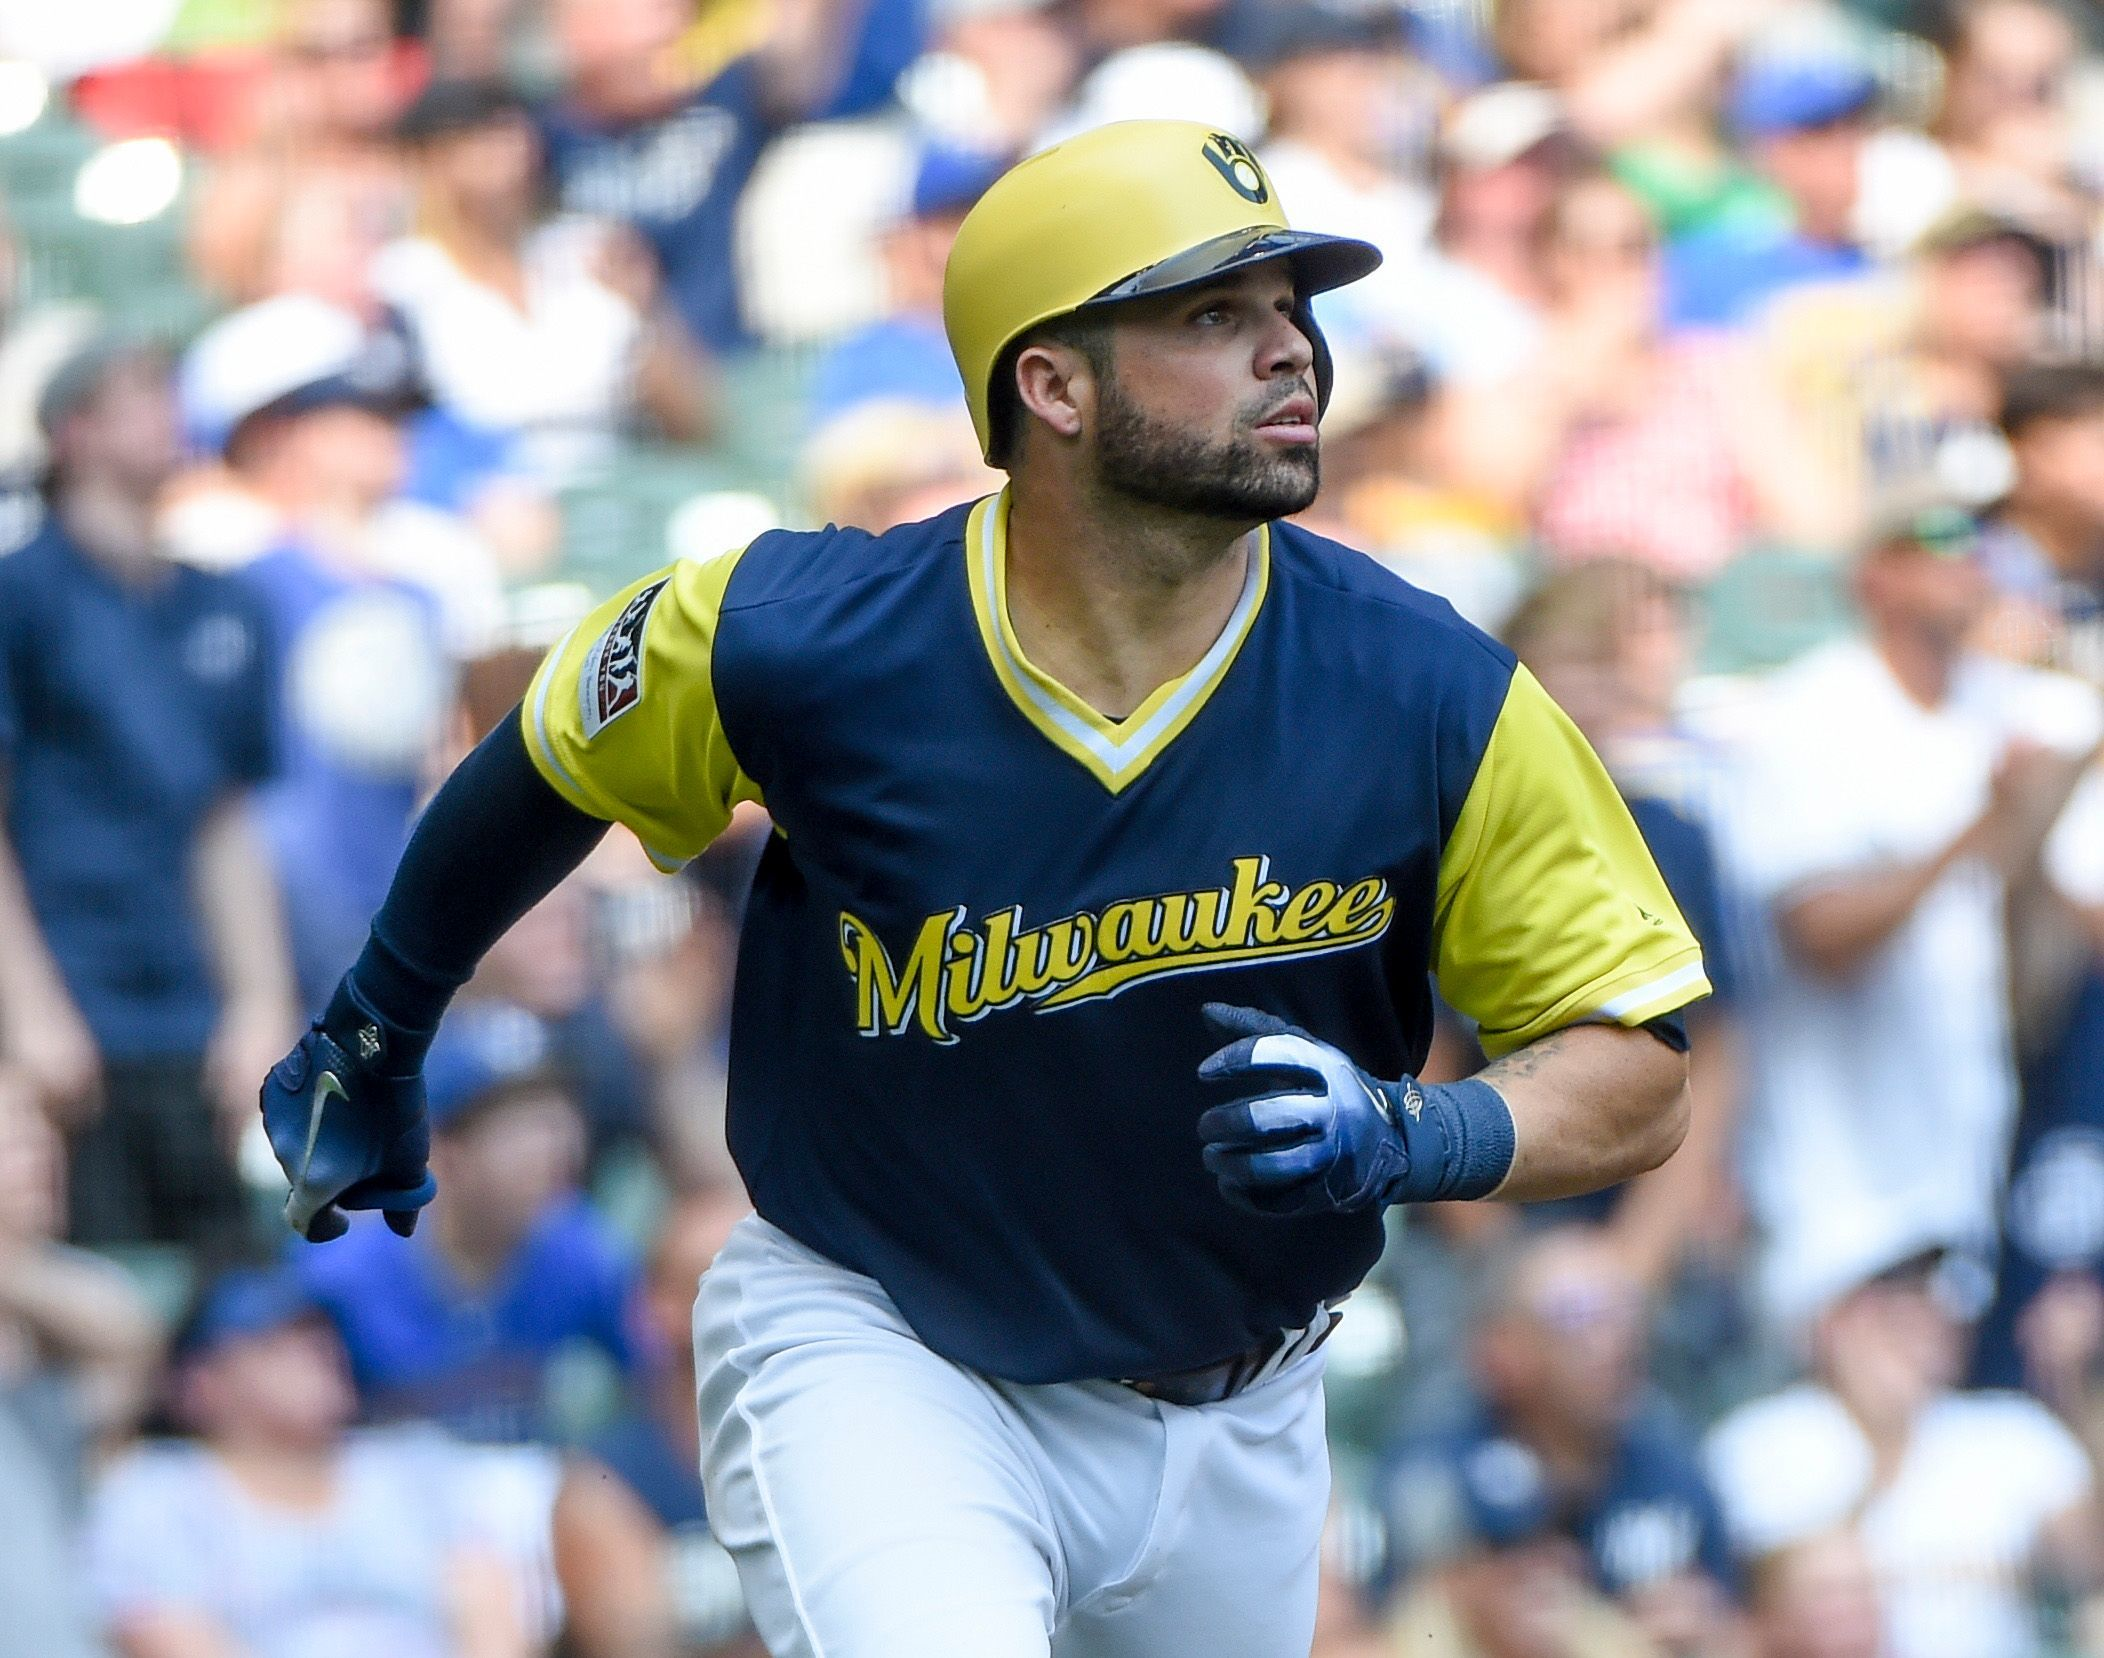 Milwaukee Brewers catcher Manny Pina is scheduled to play four games with the Wisconsin Timber Rattlers this week as he tries to return from a hamstring injury.